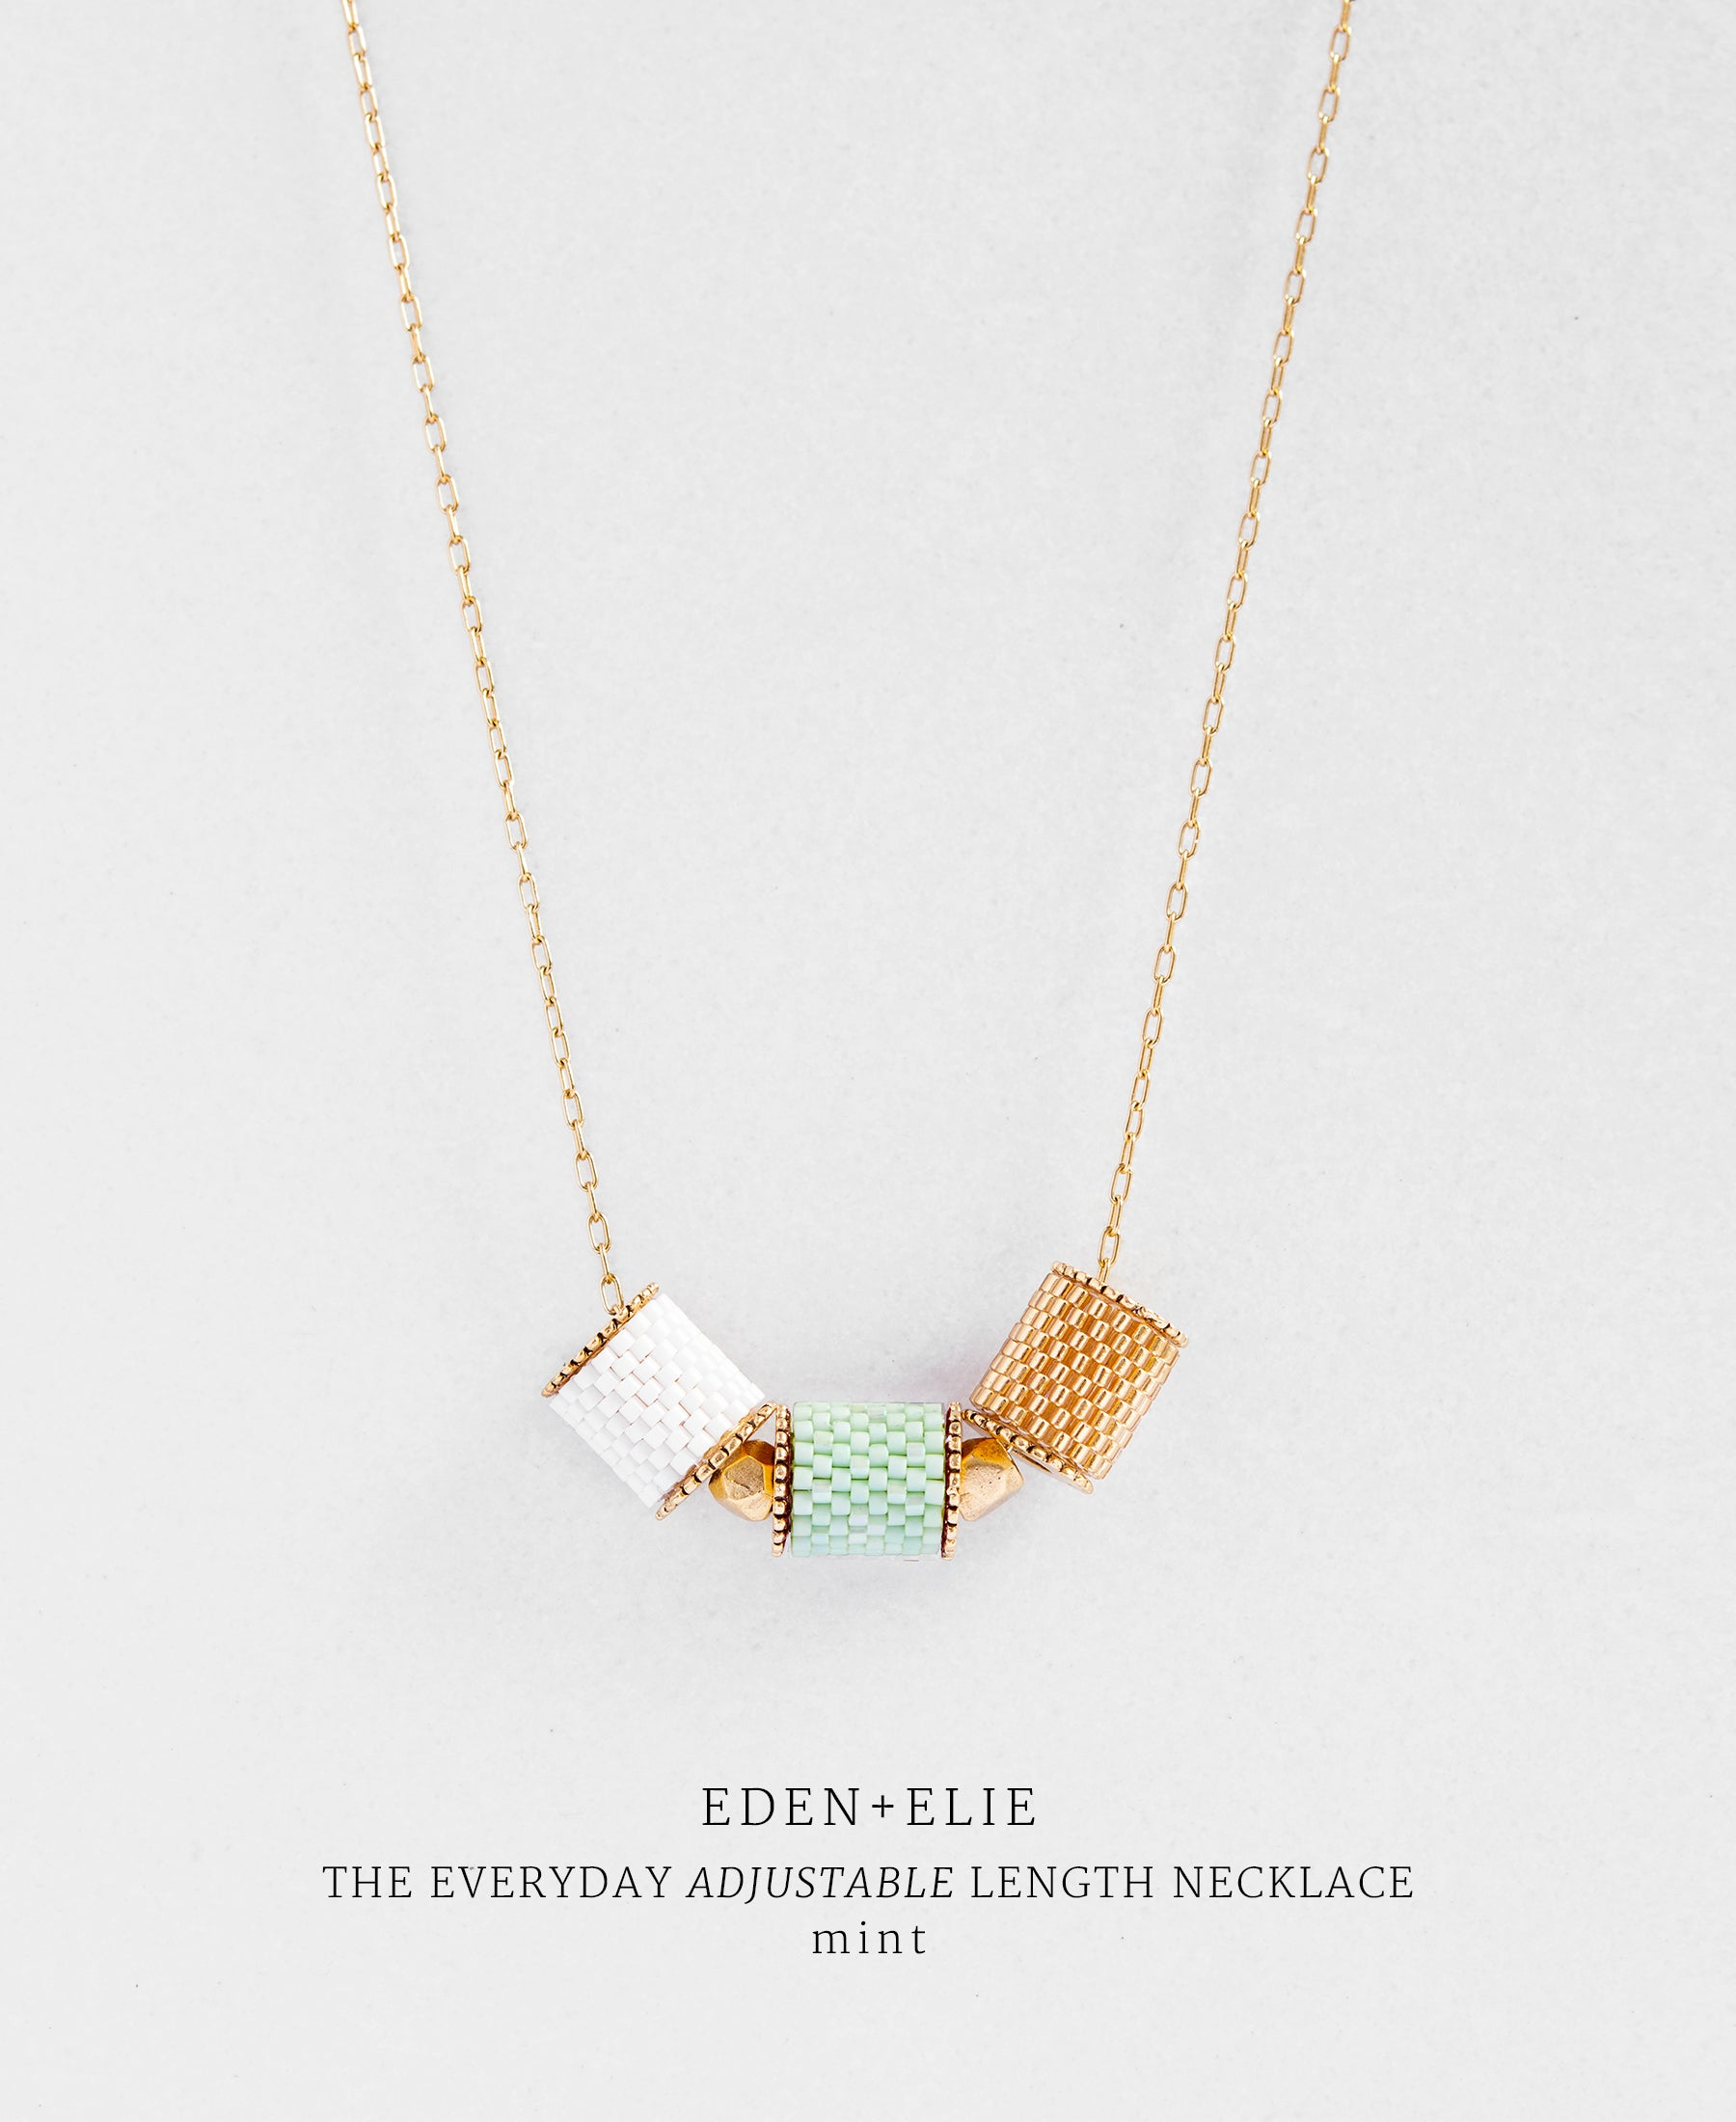 EDEN + ELIE Everyday adjustable length necklace - mint green